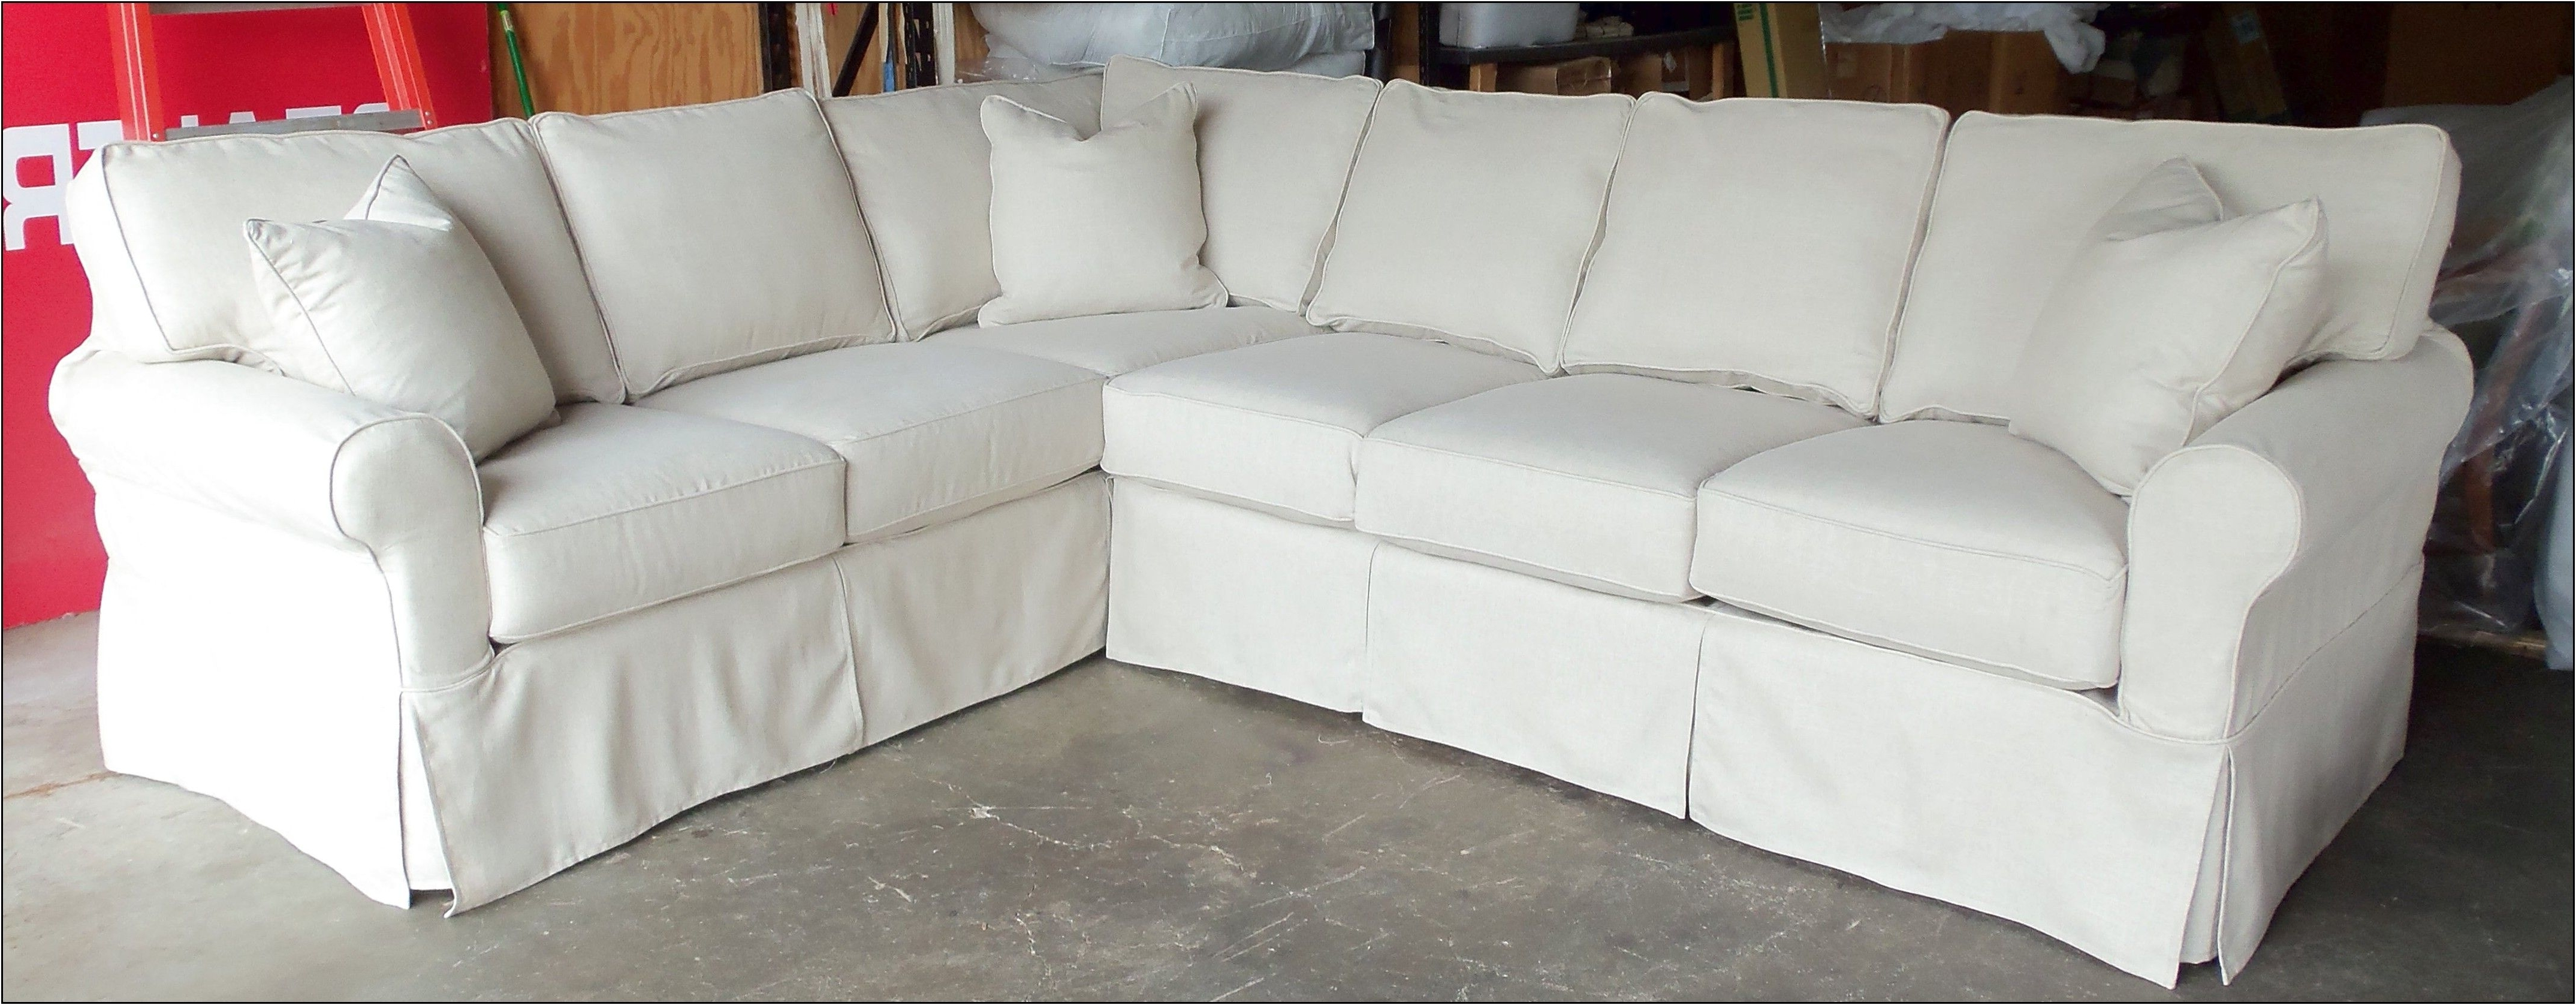 Cool Sectional Couch Cover , Best Sectional Couch Cover 72 For Throughout Favorite Sectional Sofas At Barrie (View 2 of 15)